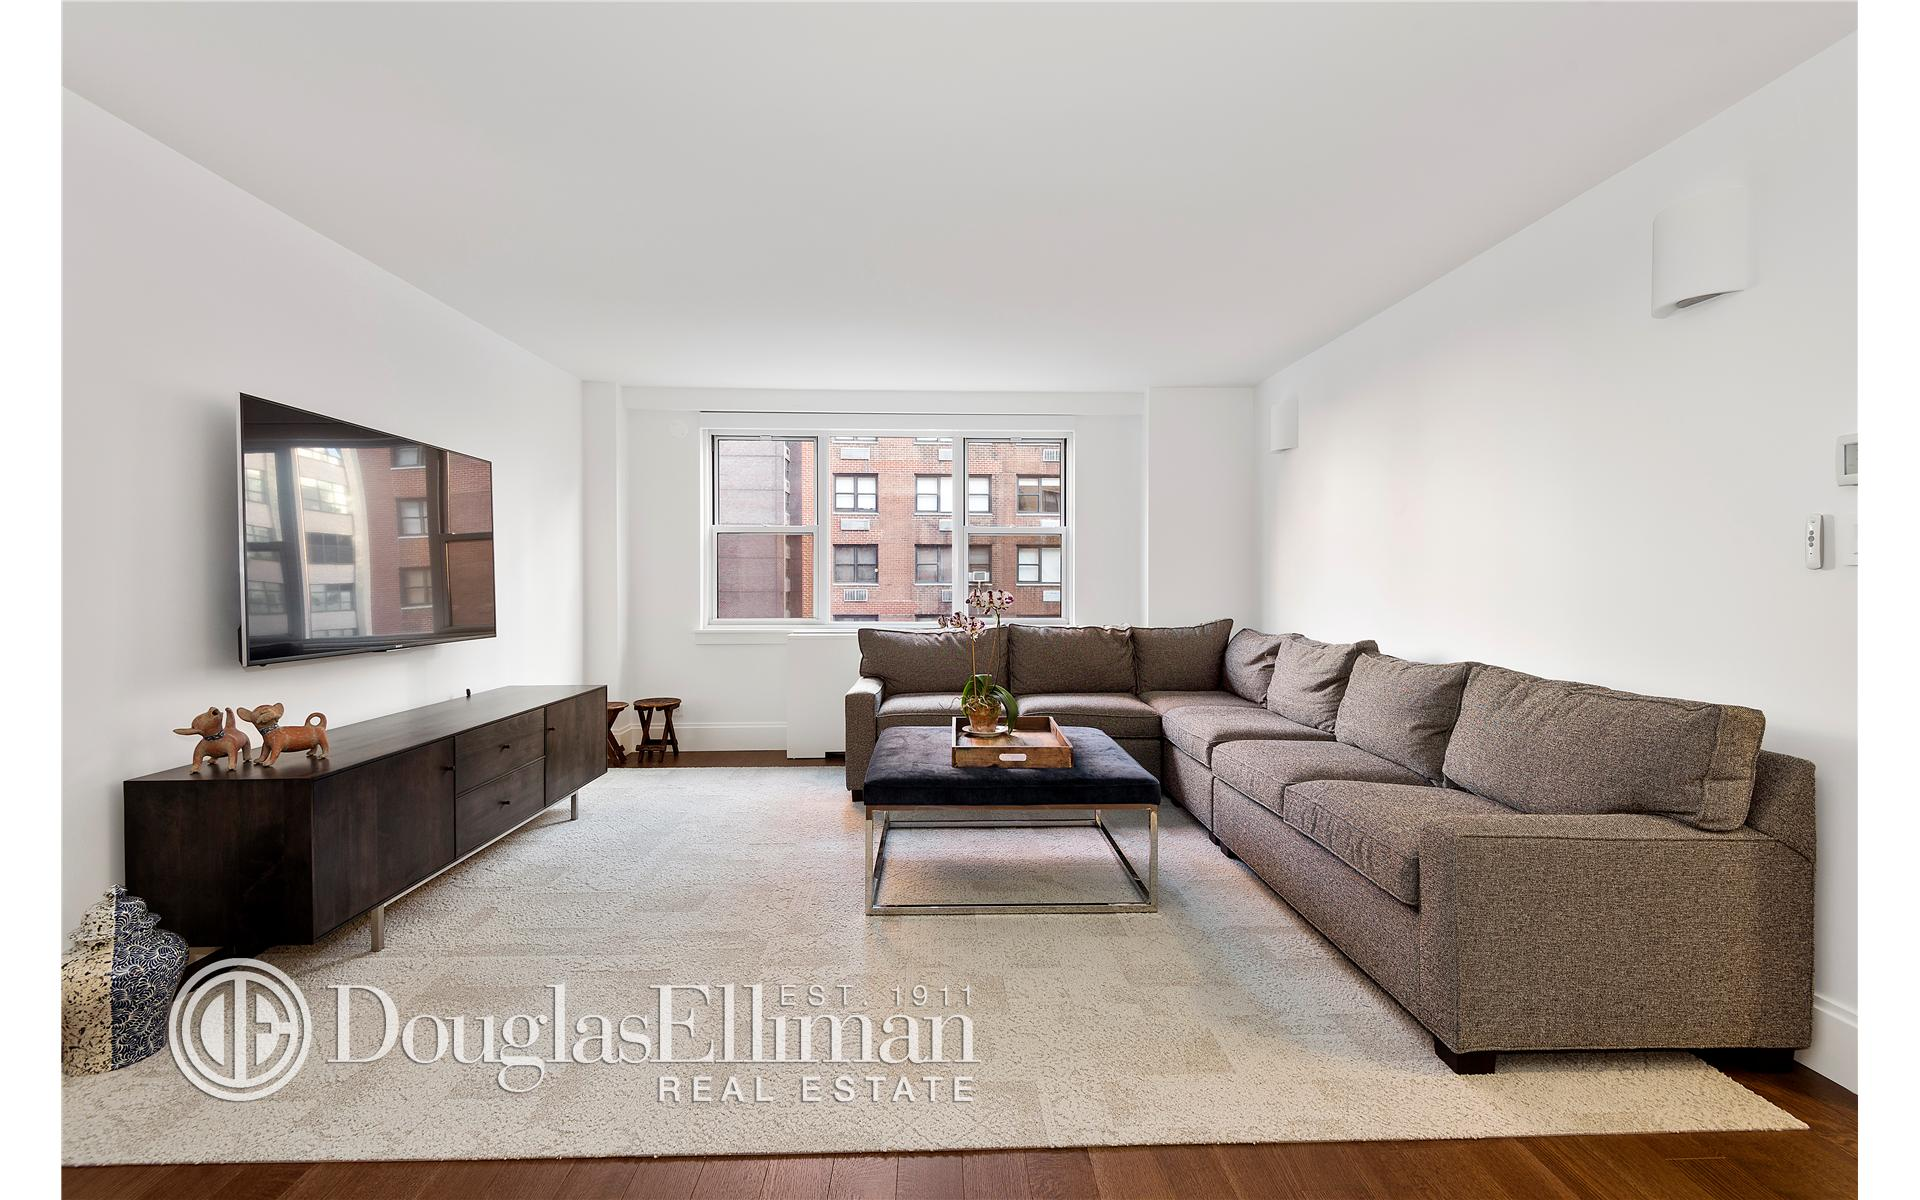 Co-op for Sale at 139 East 33rd Street New York, New York 10016 United States